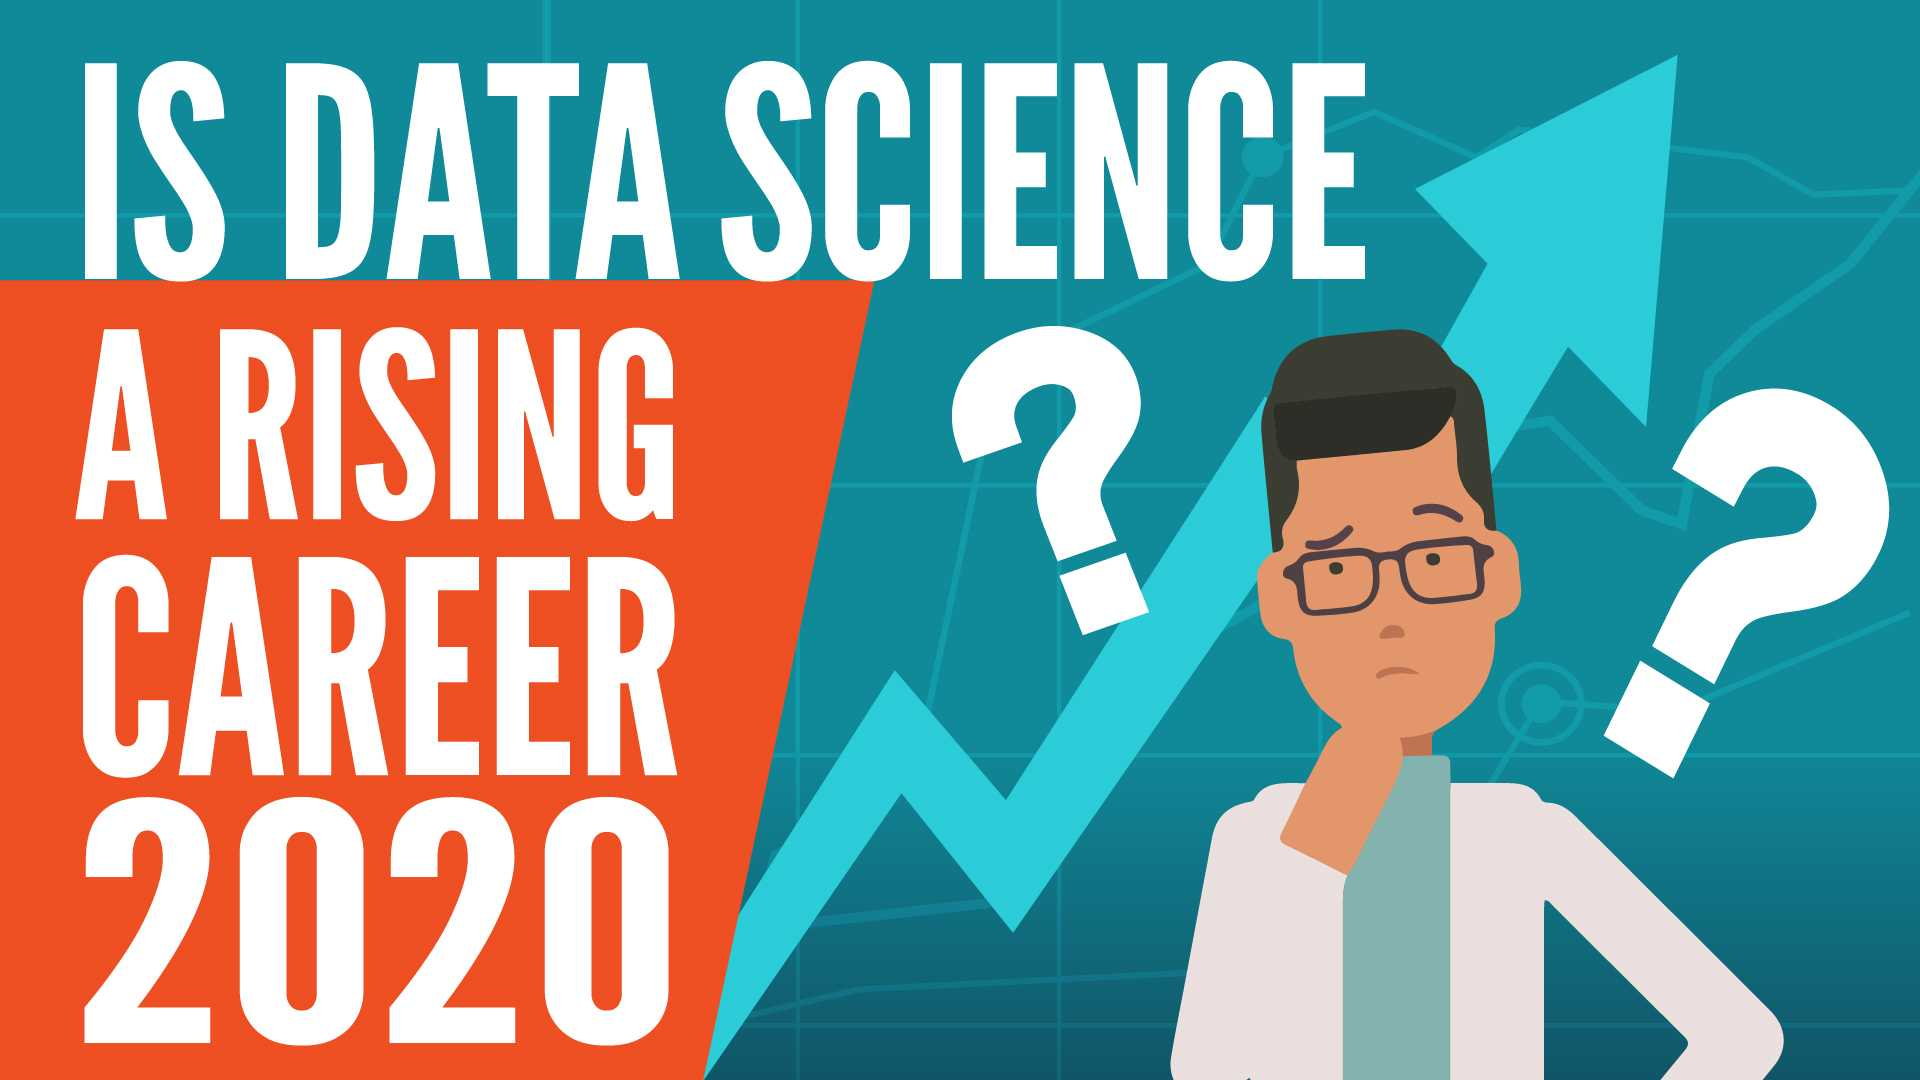 Are Data Science Careers On the Rise in 2020?